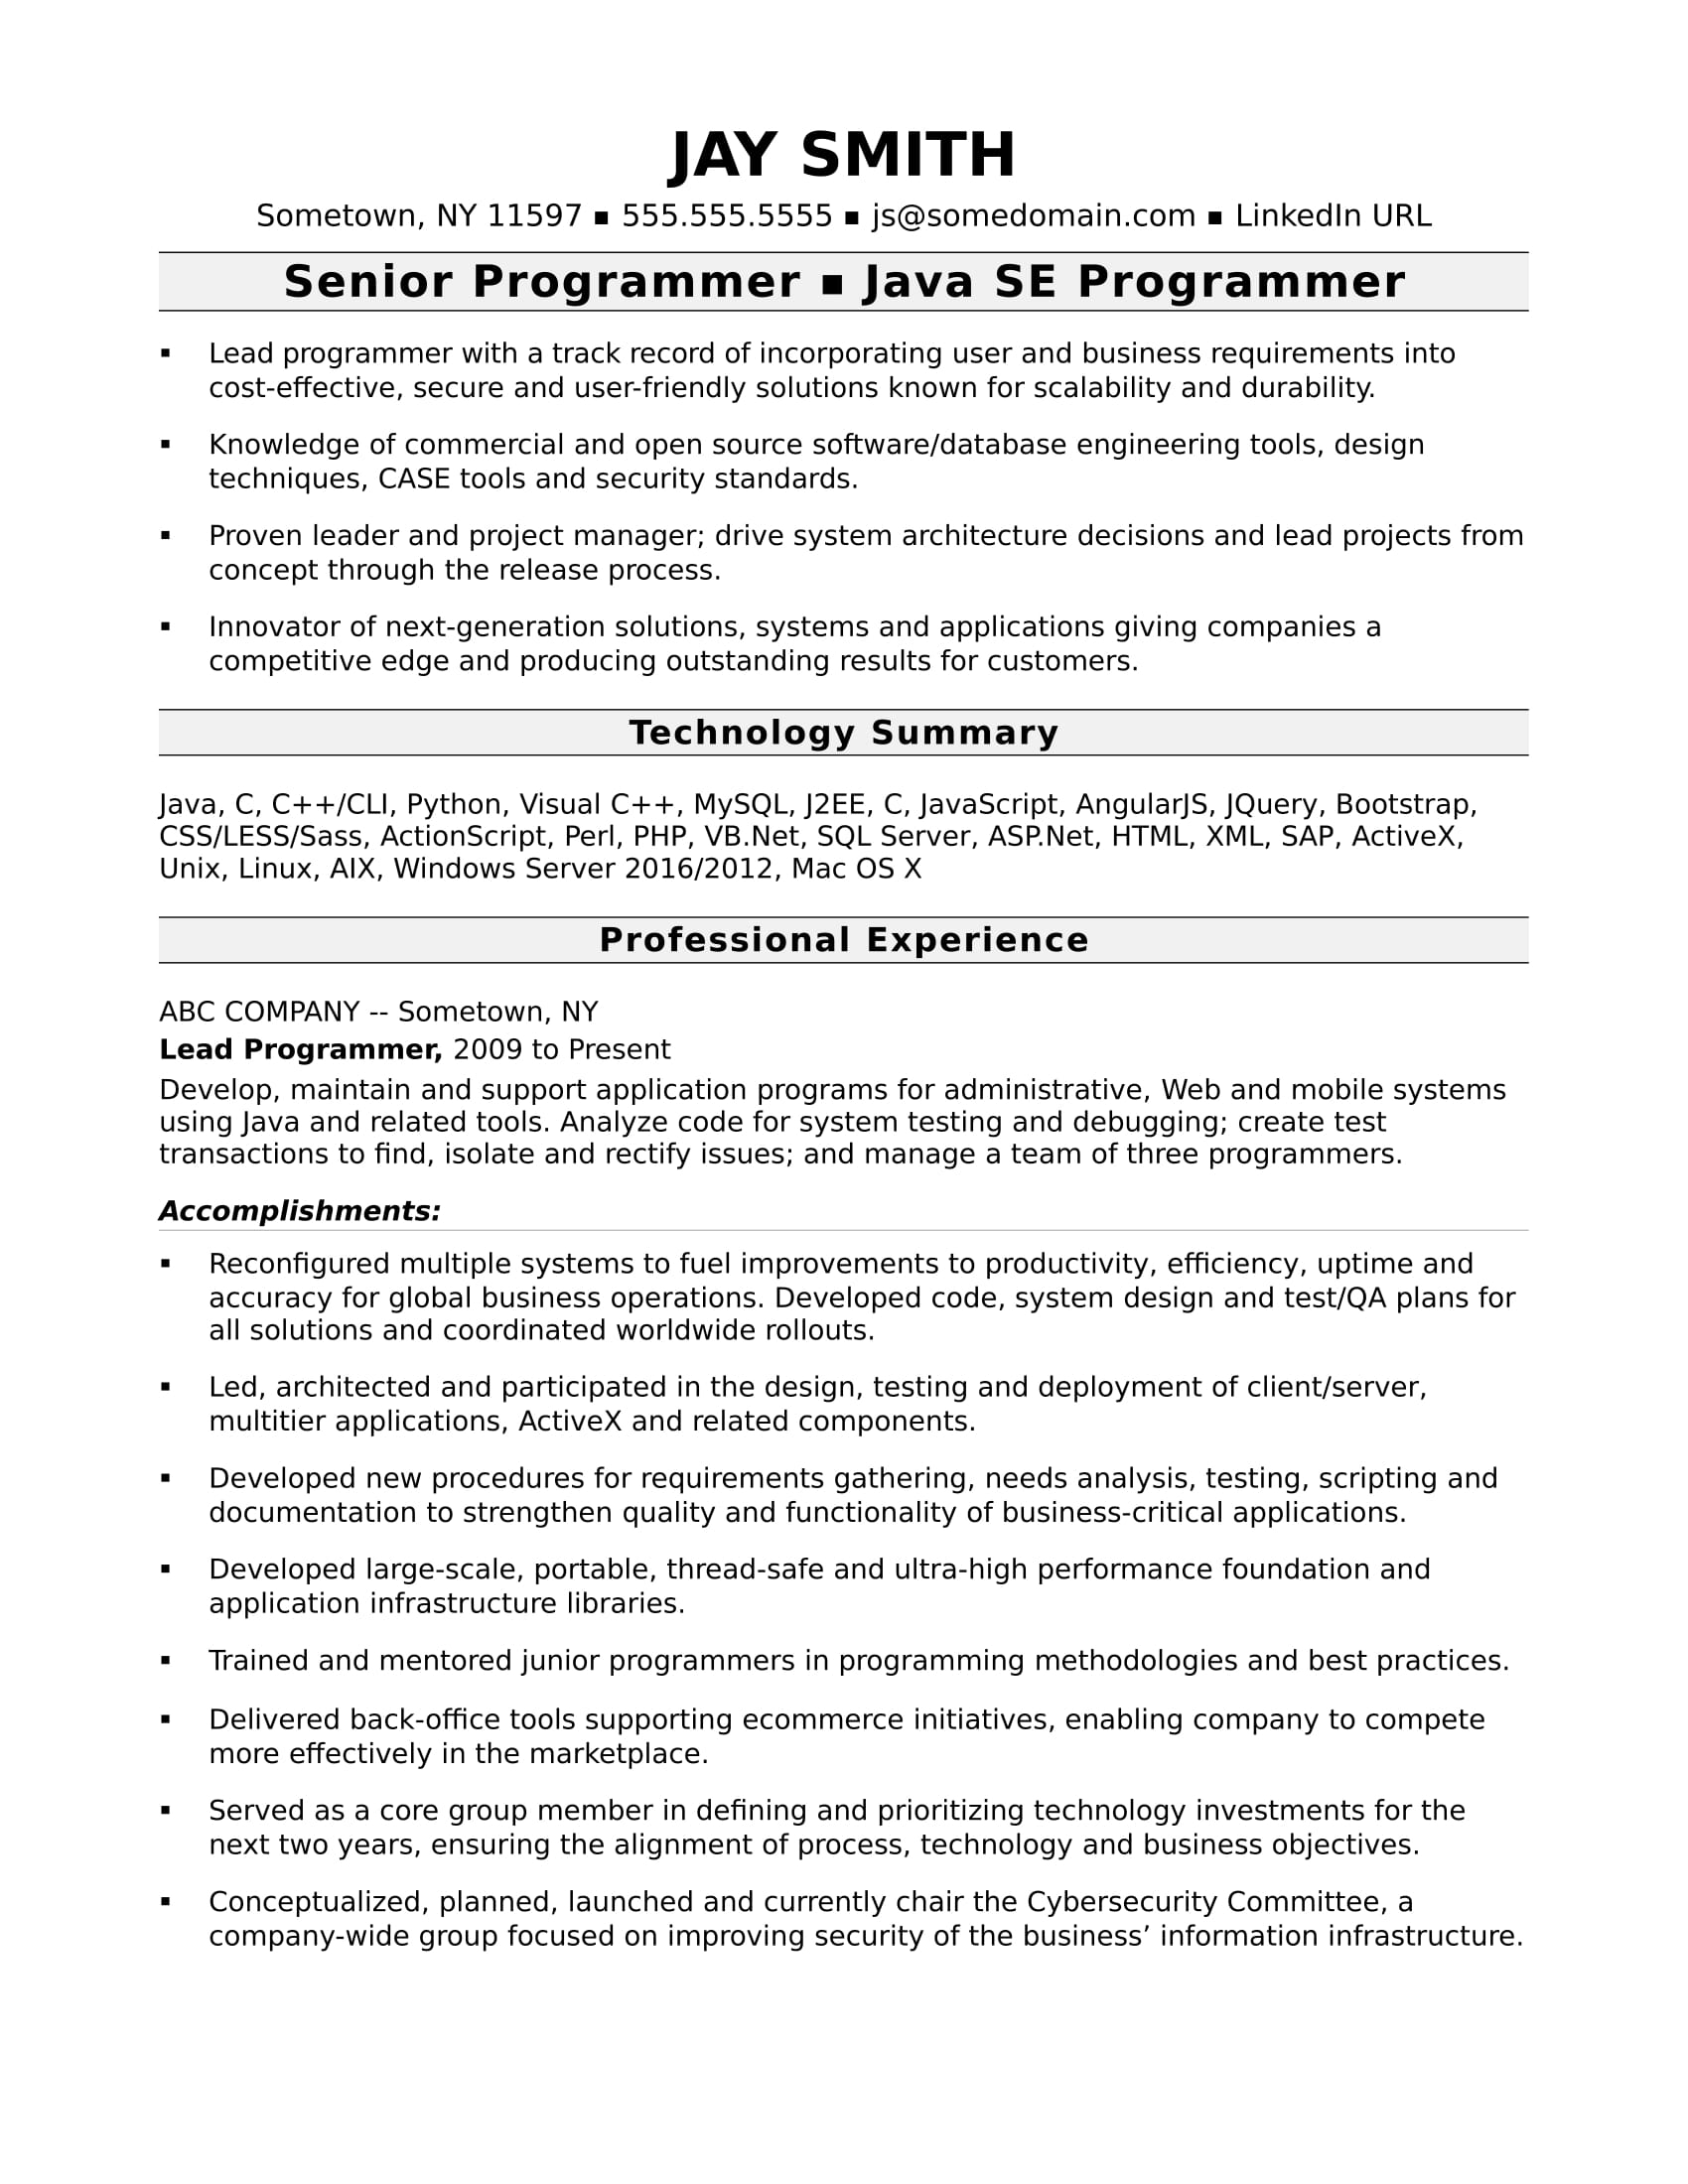 Sample Resume For An Experienced Computer Programmer Monstercom  Example Of Resume To Apply Job